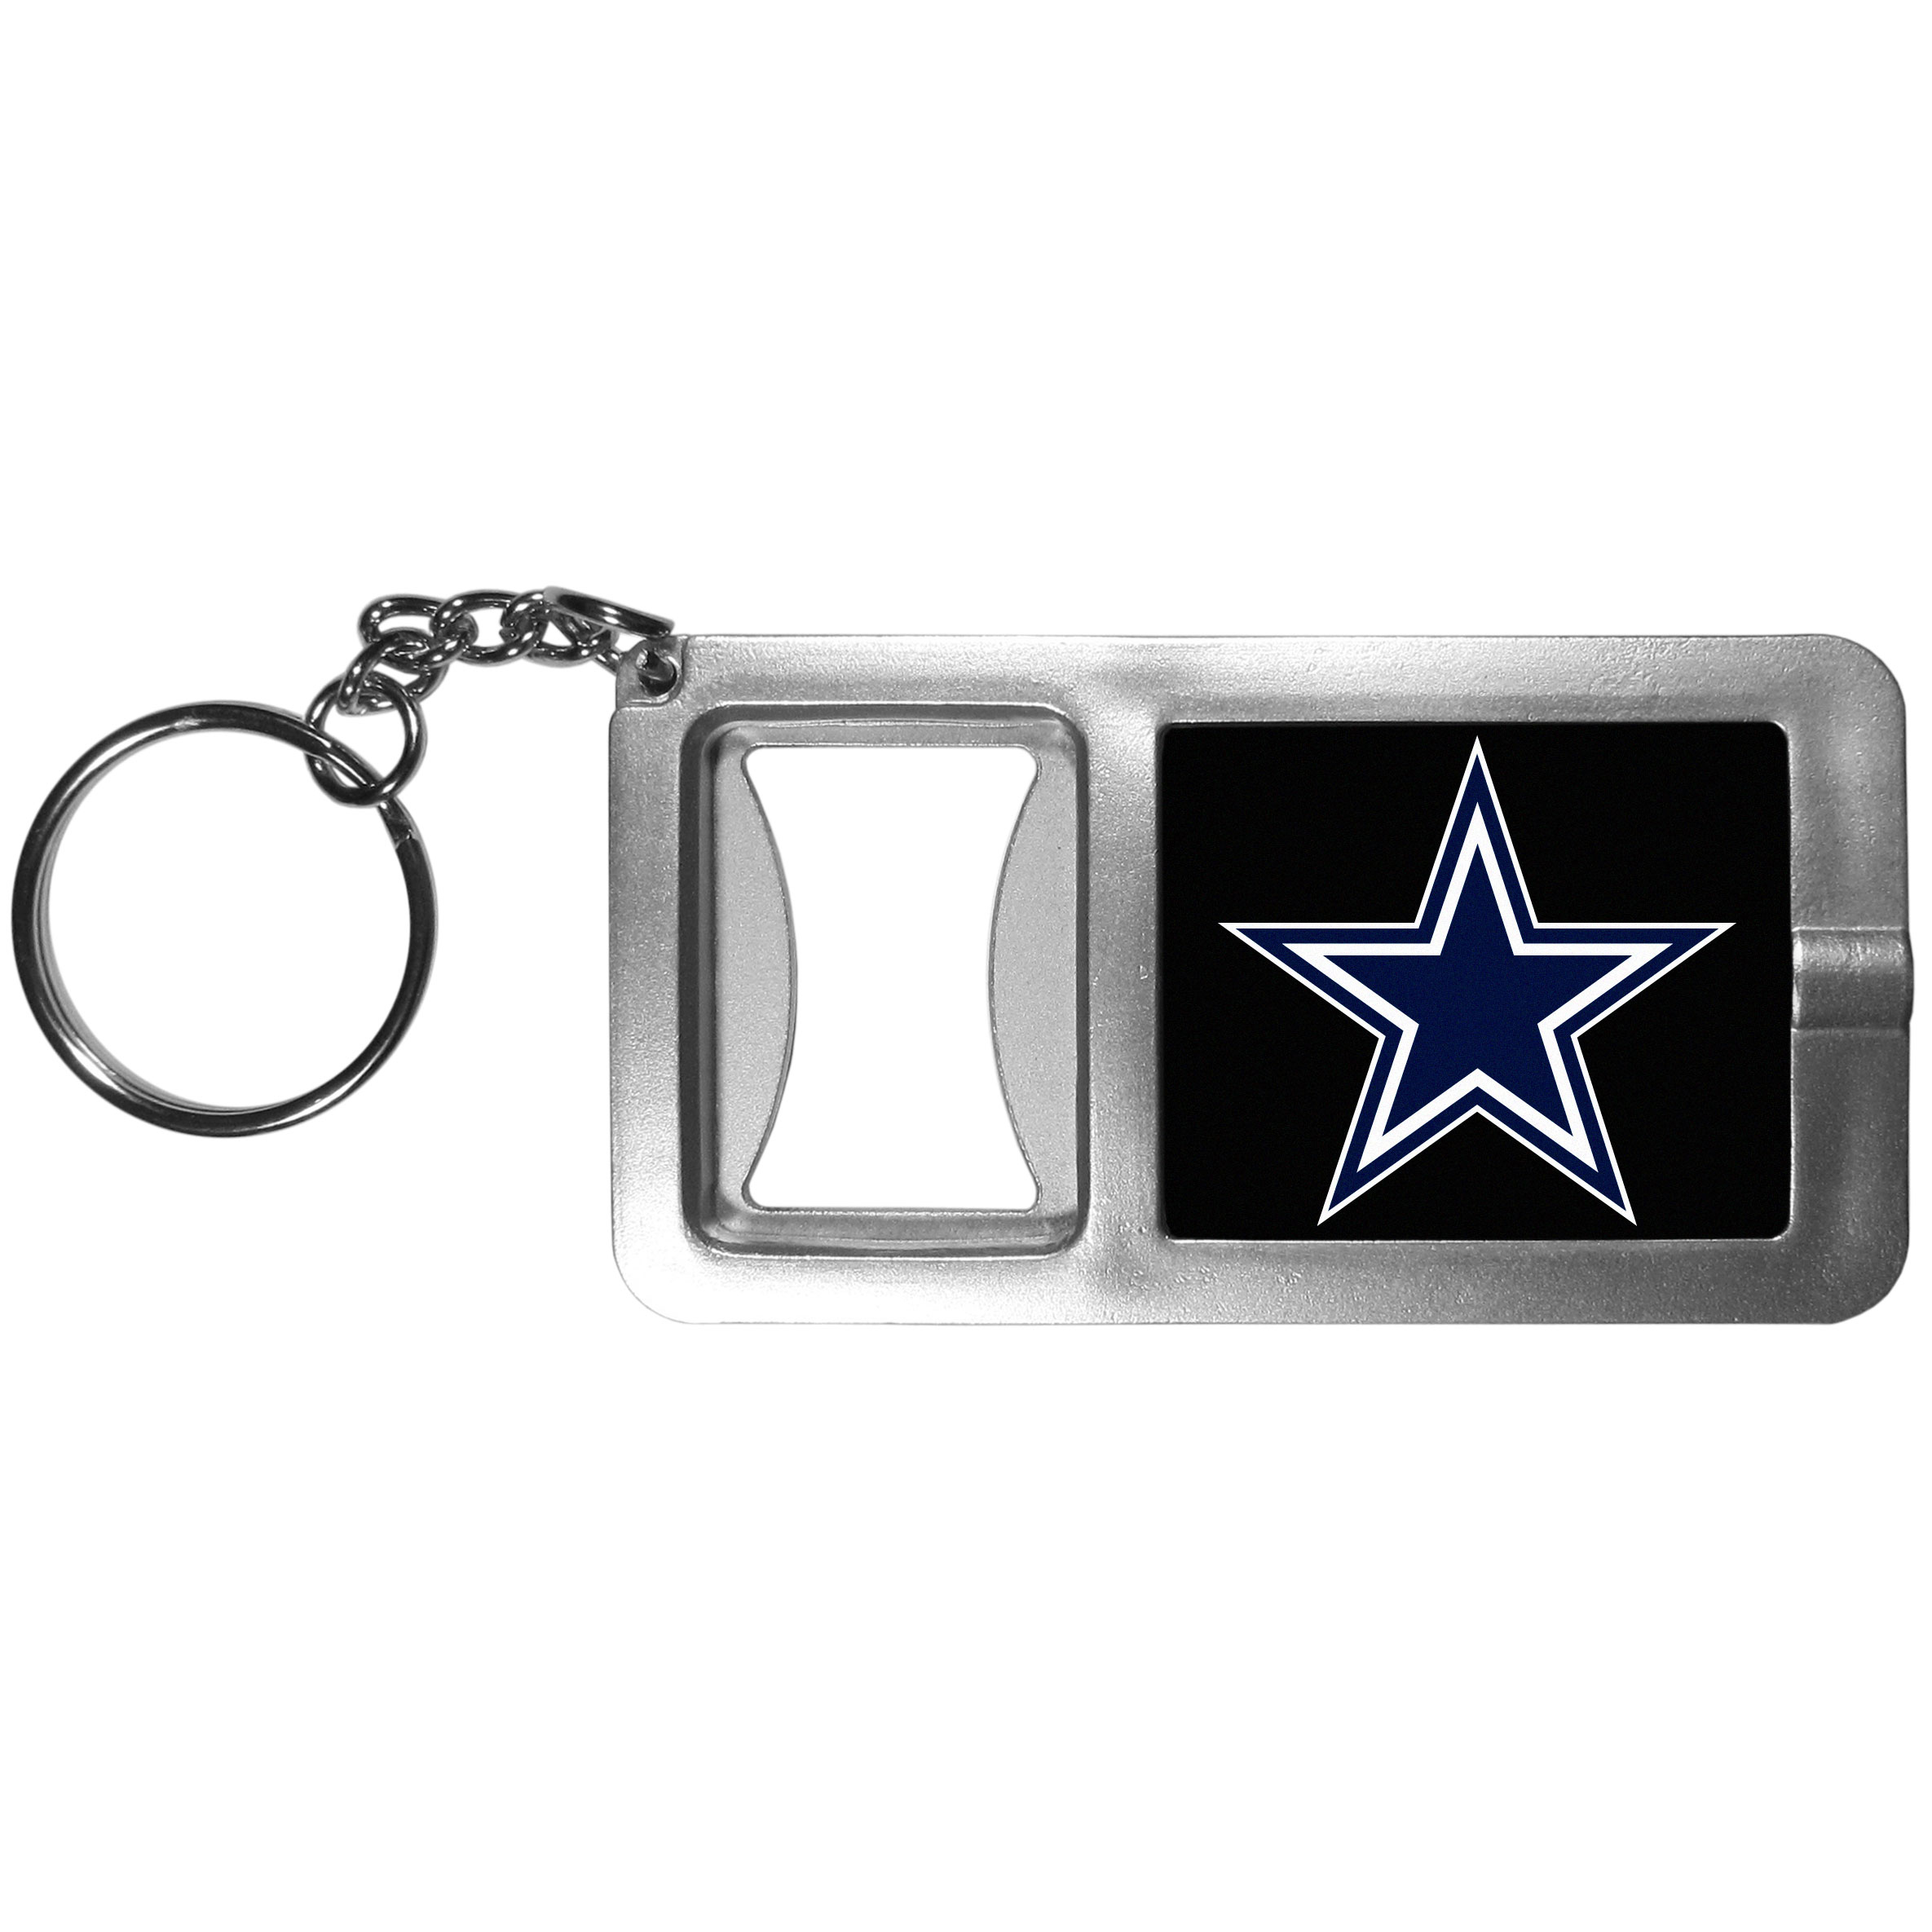 Dallas Cowboys Flashlight Key Chain with Bottle Opener - Never be without light with our Dallas Cowboys flashlight keychain that features a handy bottle opener feature. This versatile key chain is perfect for camping and travel and is a great way to show off your team pride!